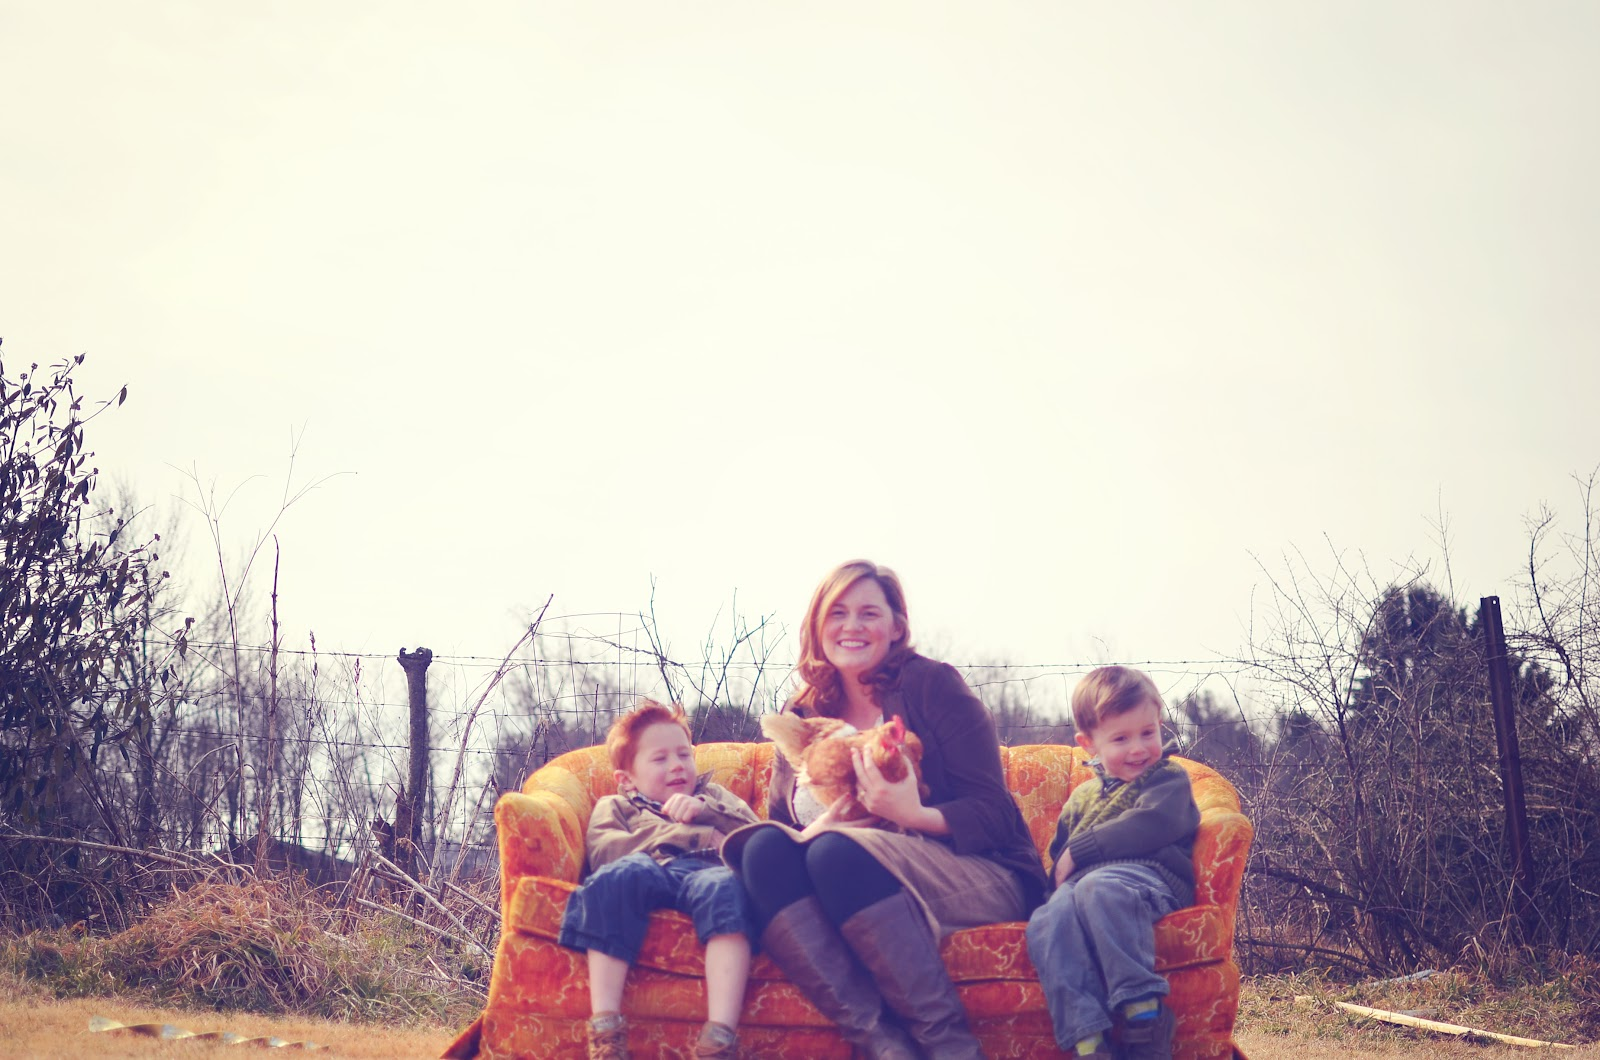 How to Photograph Your Family Using the Self-Timer Function